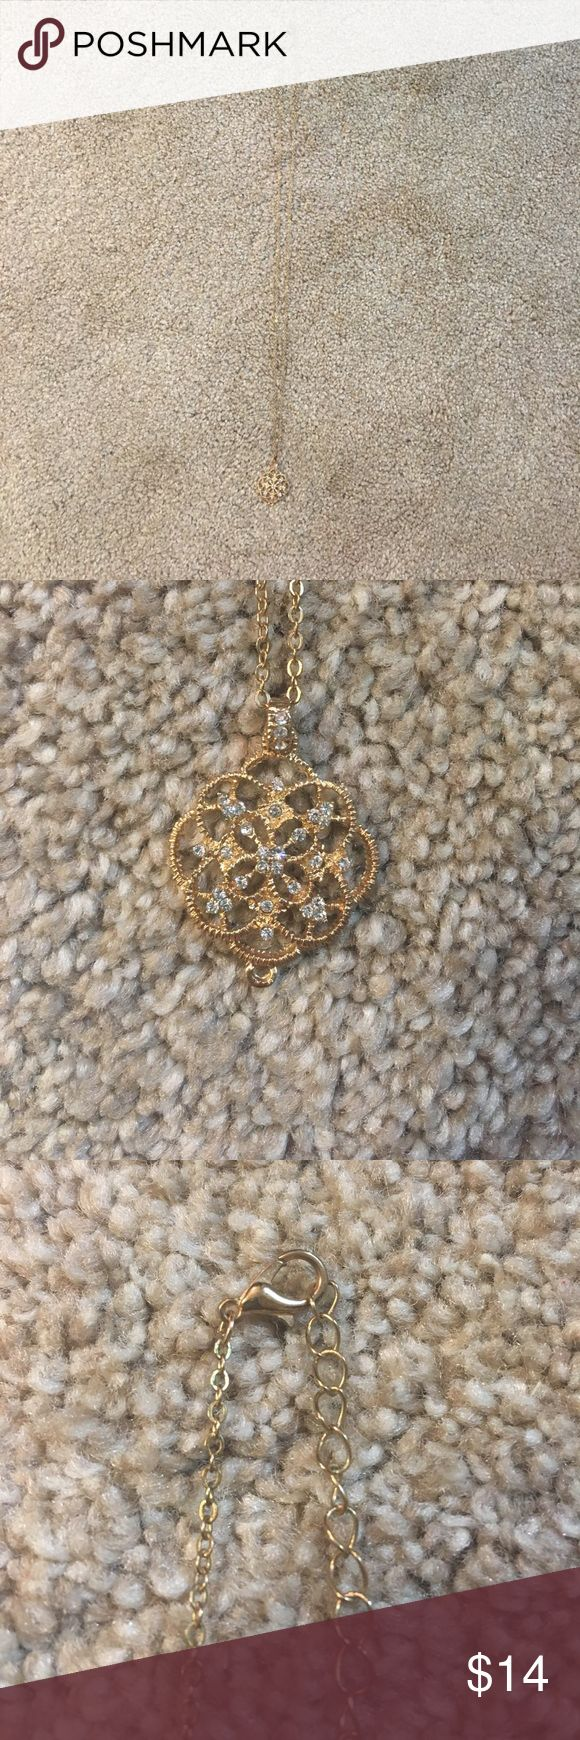 Long Gold necklace Excellent condition gold long chain necklace with pretty pendant at the bottom Jewelry Necklaces